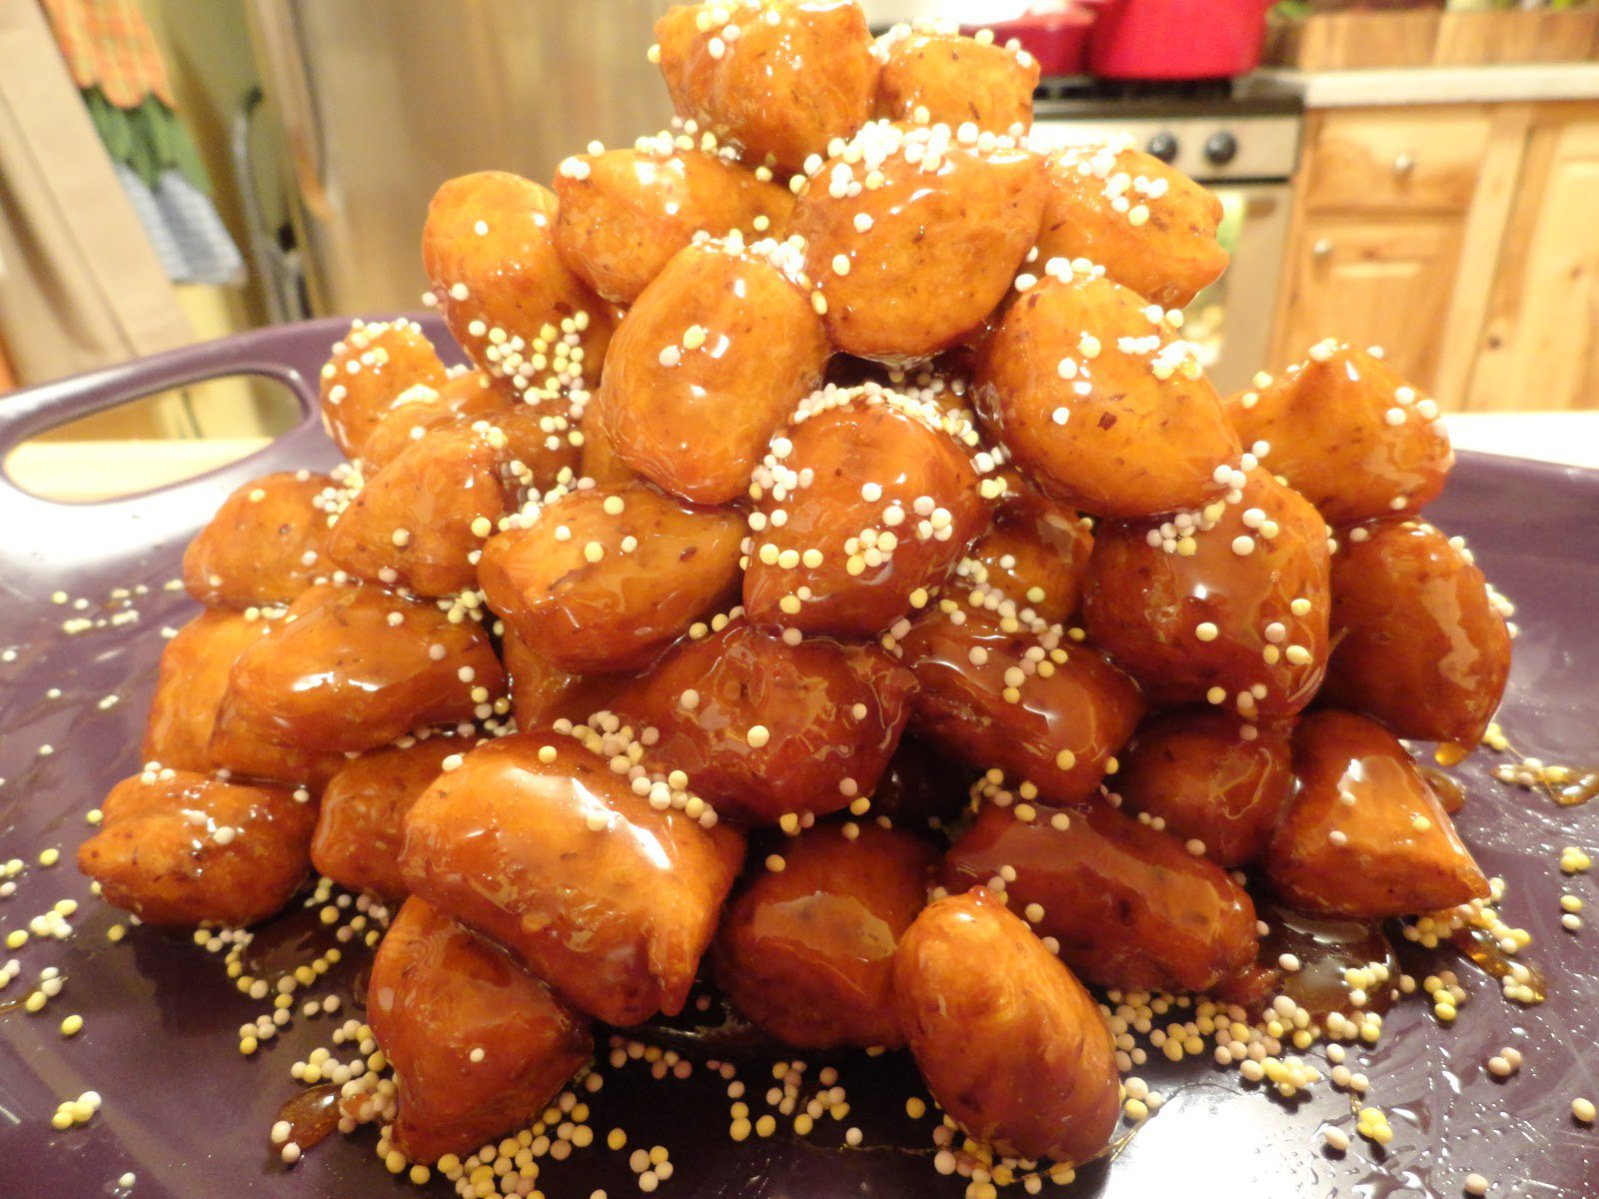 Vegan Gluten-Free Jewish Bimuelos: Fried 'Honey' Puffs